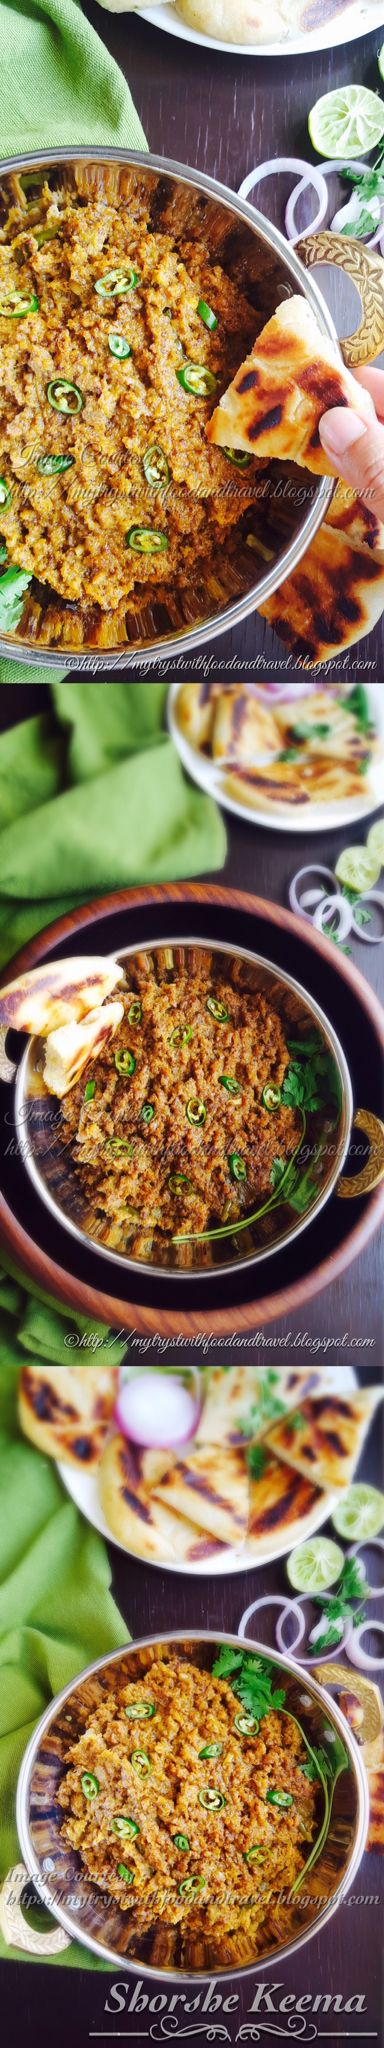 Goat liver with dill leaves indian kitchen cooking recipes - Shorshe Keema Recipe Mutton Goat Mince In Thick Mustard Sauce Recipe Basking In Festivities